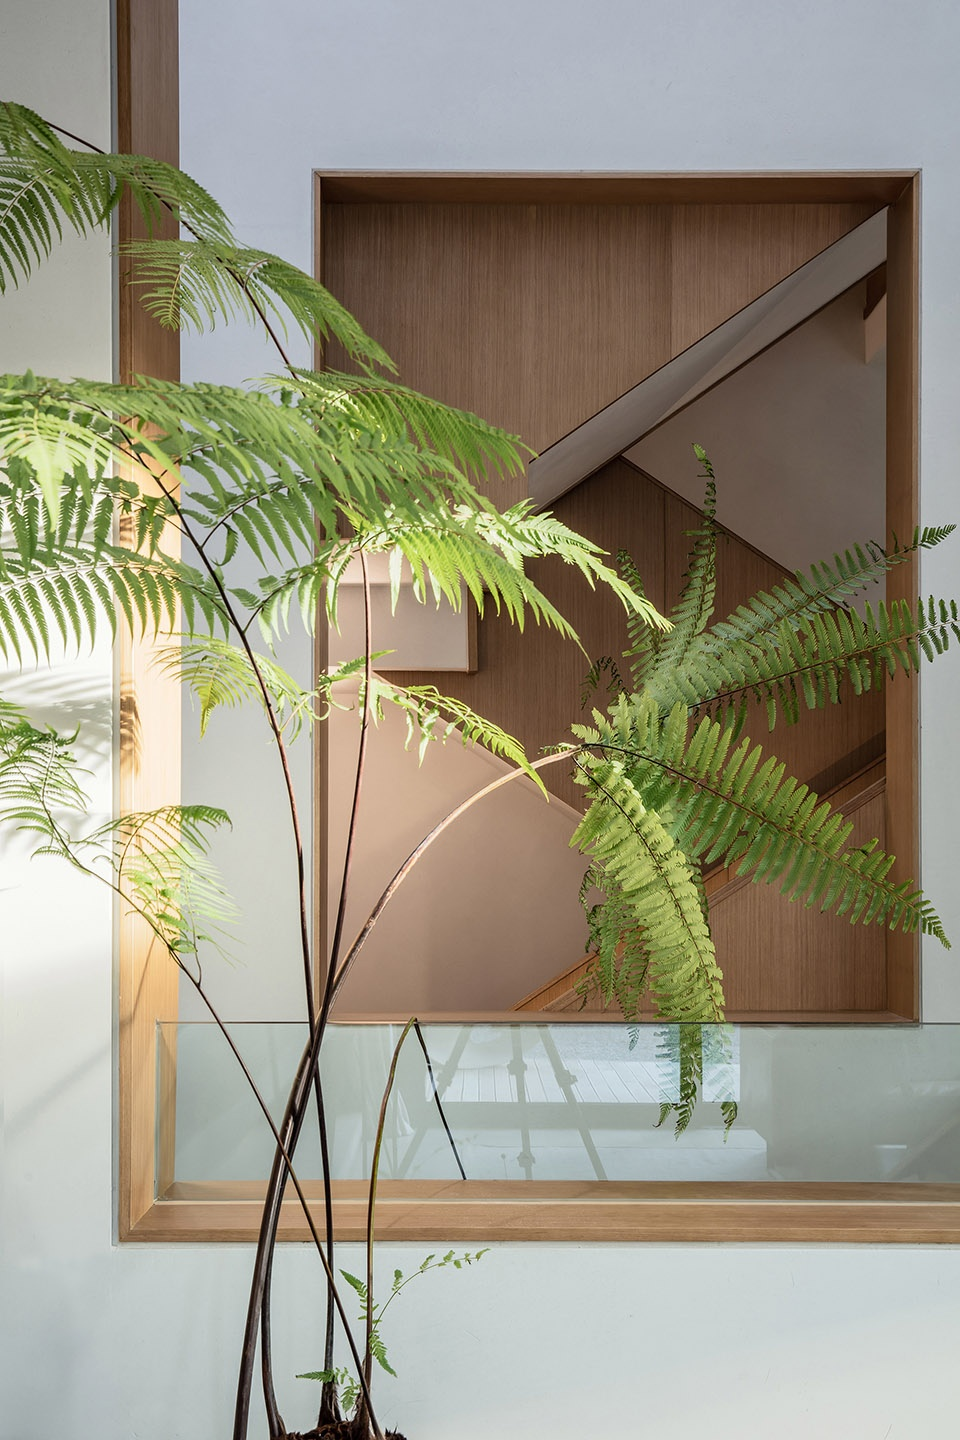 025-a-desired-home-china-by-liang-architecture-studio-960x1440.jpg